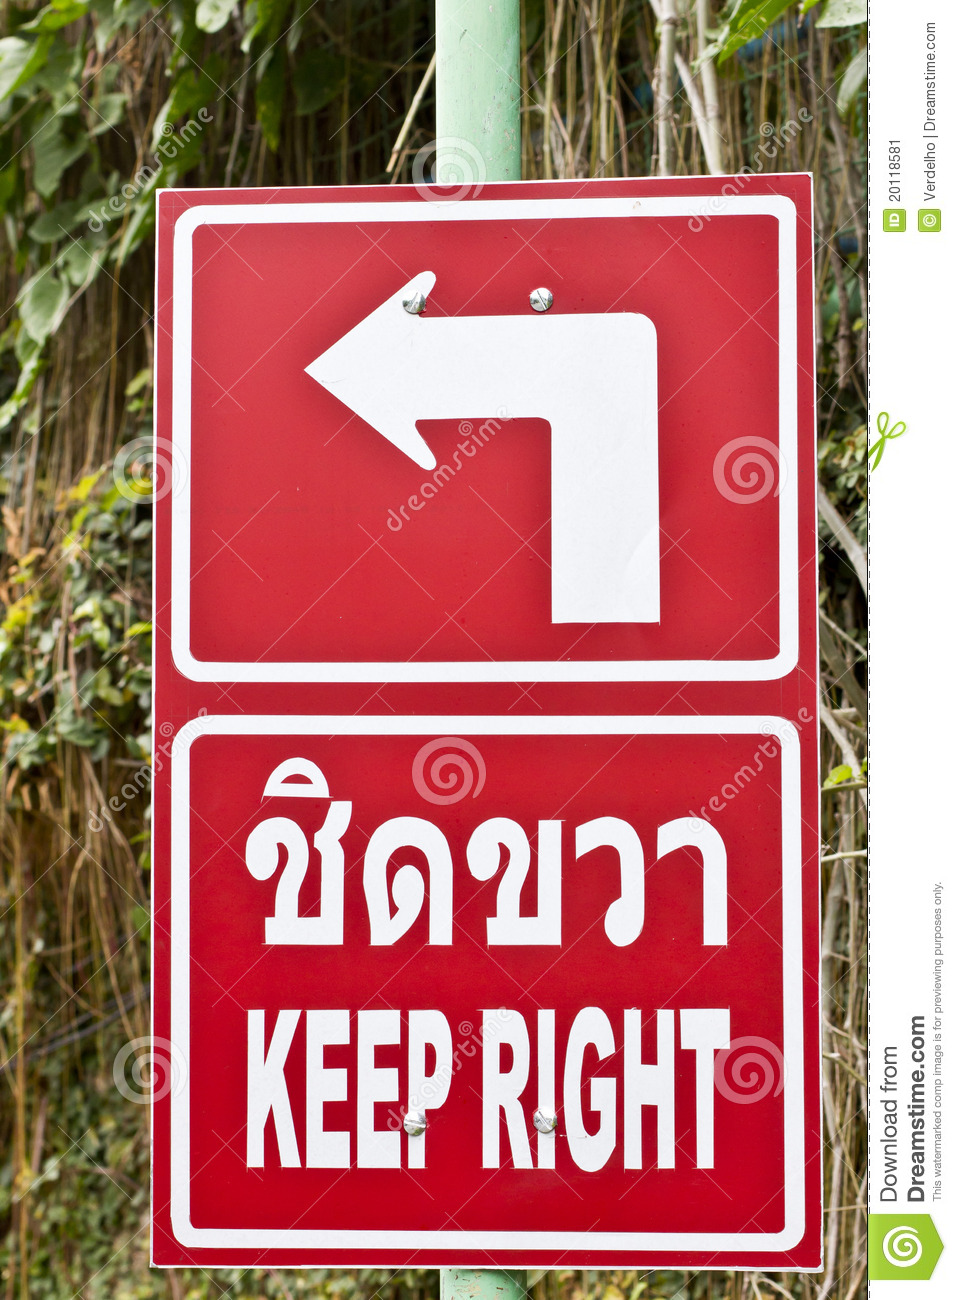 Keep Right Road Sign In Phuket, Thailand Stock Image. Chocolate Stickers. Ship Faced Decals. Series Lettering. Being Human Banners. Gare Tinplate Signs Of Stroke. Cute Food Banners. Star Destroyer Logo. Racing Pigeon Signs